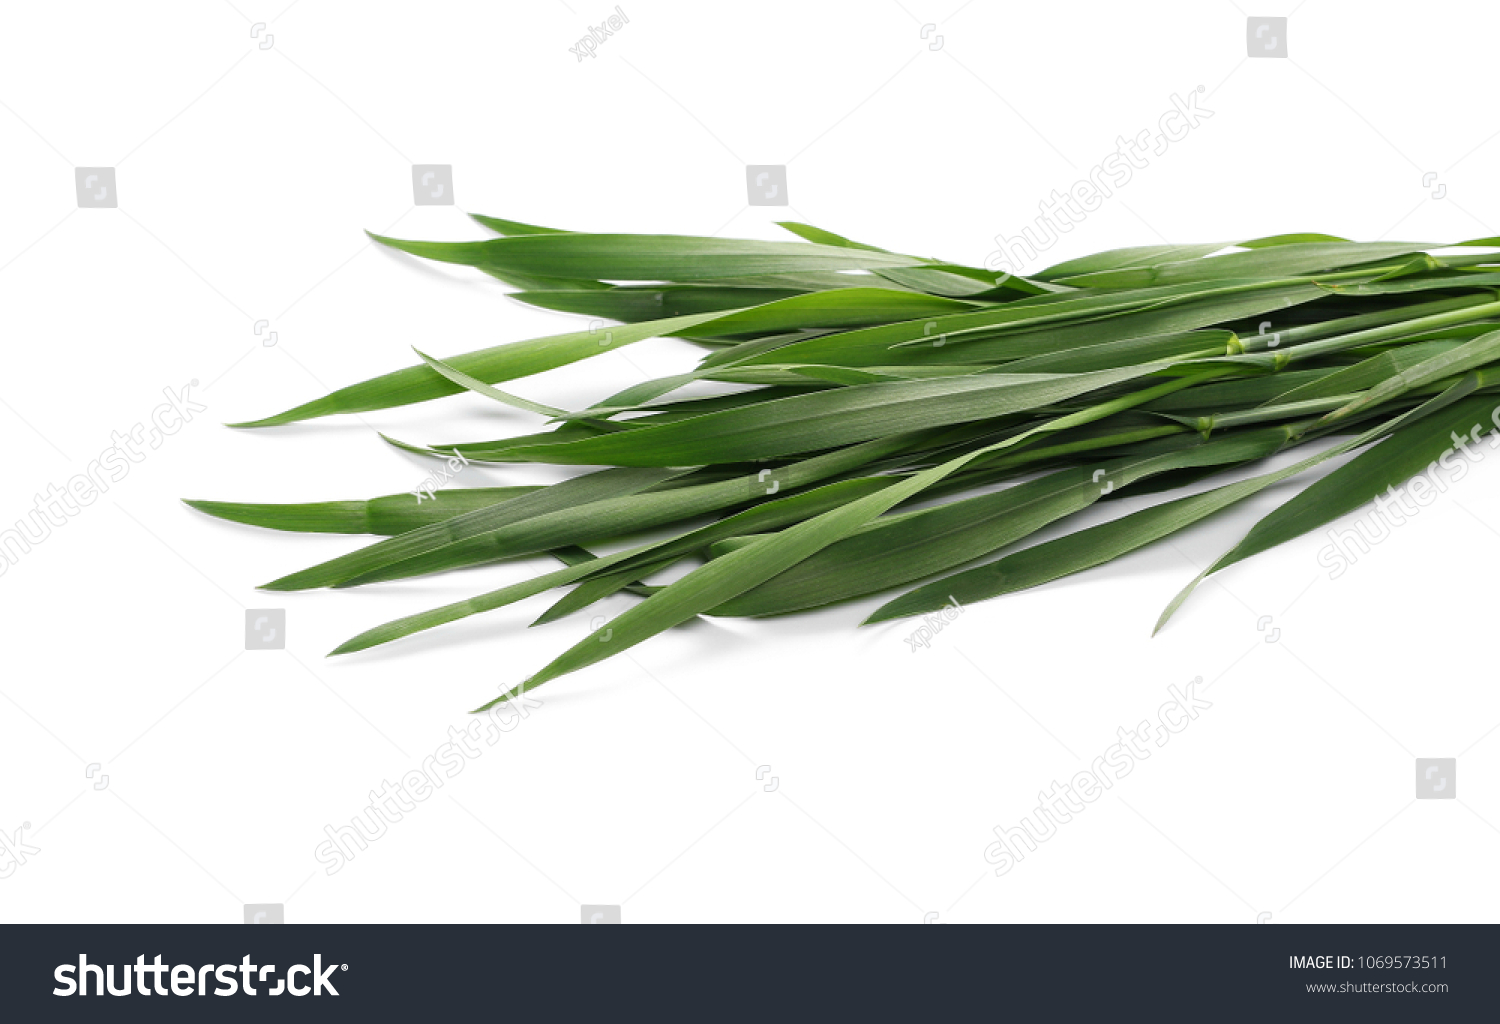 Green young wheat isolated on white background #1069573511